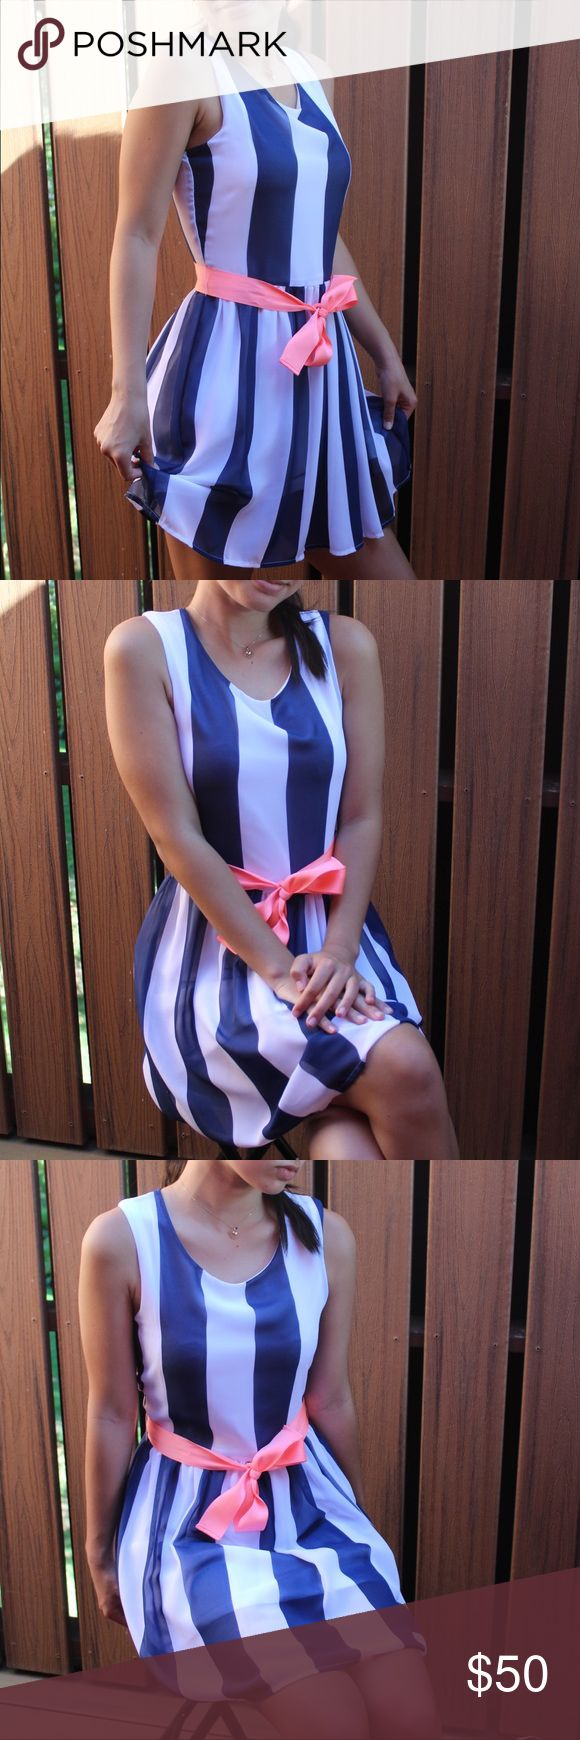 Striped Teen Party Dress! (ages 12-14) Striped blue and white party dress with pink bow in front. Zipper in back. Tommy Hilfiger, size L/G (12-14). Short dress, above the knee (model is 5 feet, 3 inches tall, 107 pounds). Light, great for the Spring and Summer. Lightly used. Tommy Hilfiger Dresses Formal